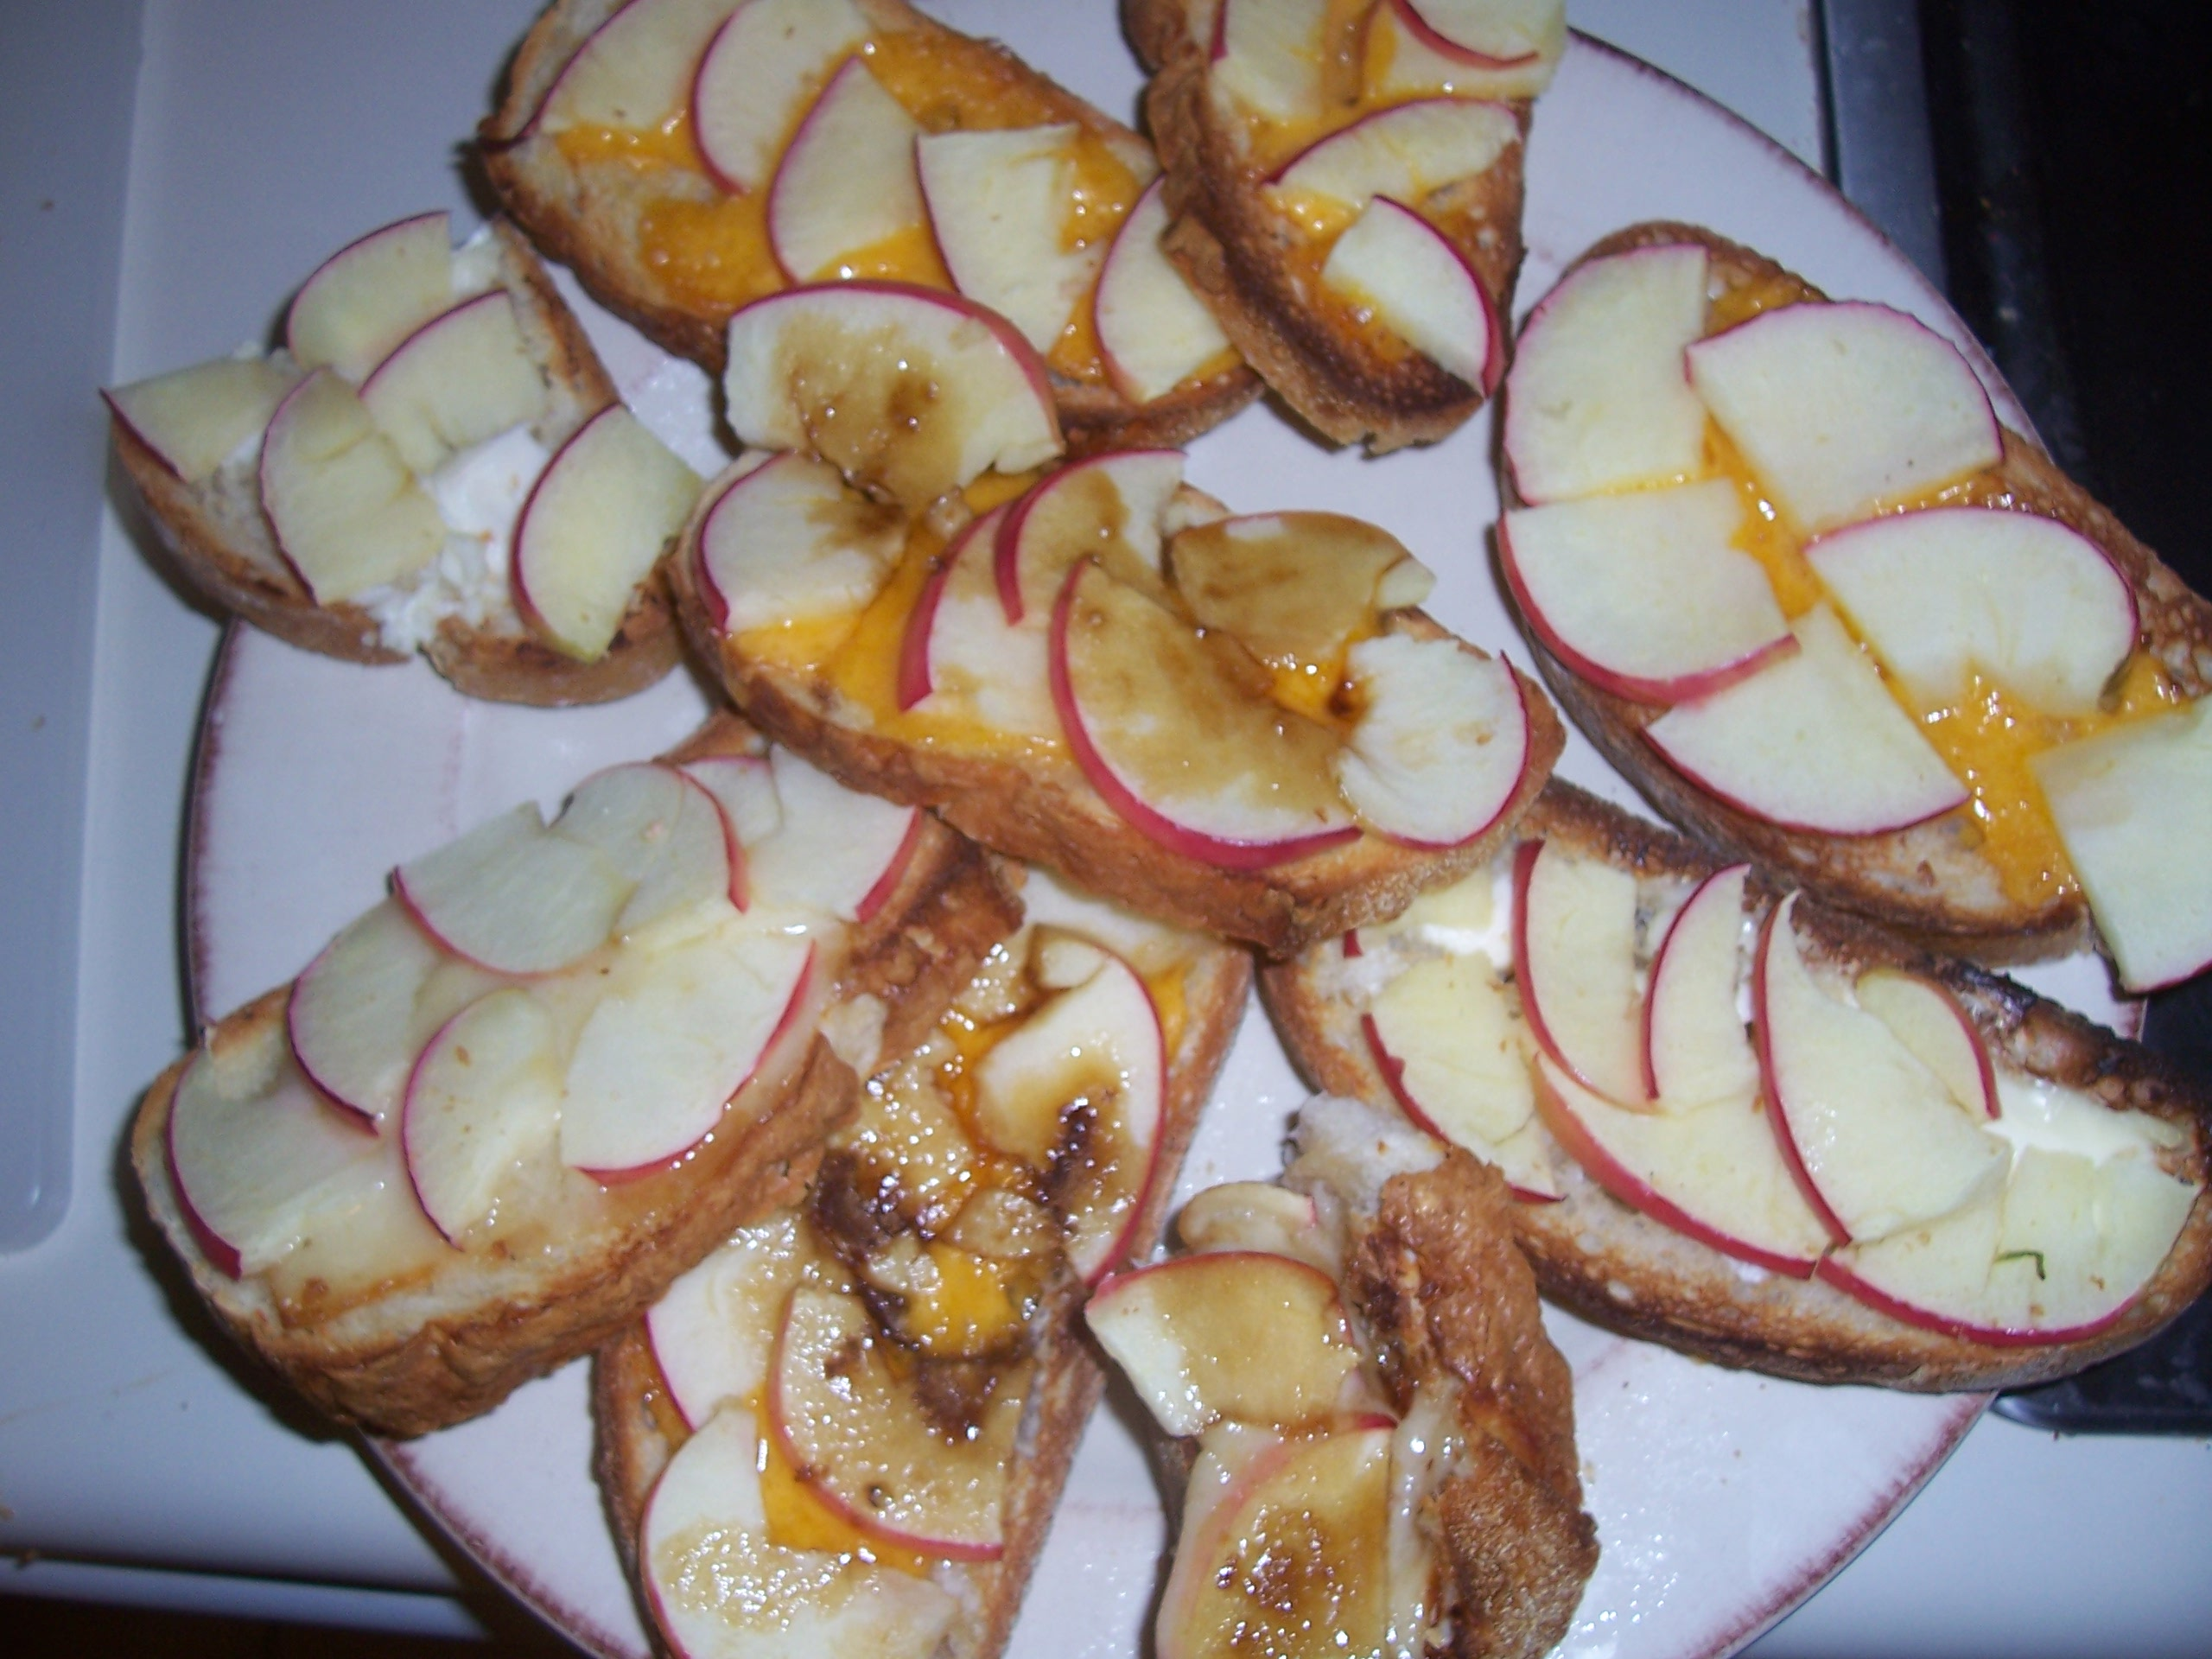 Apple and cheese sandwiches